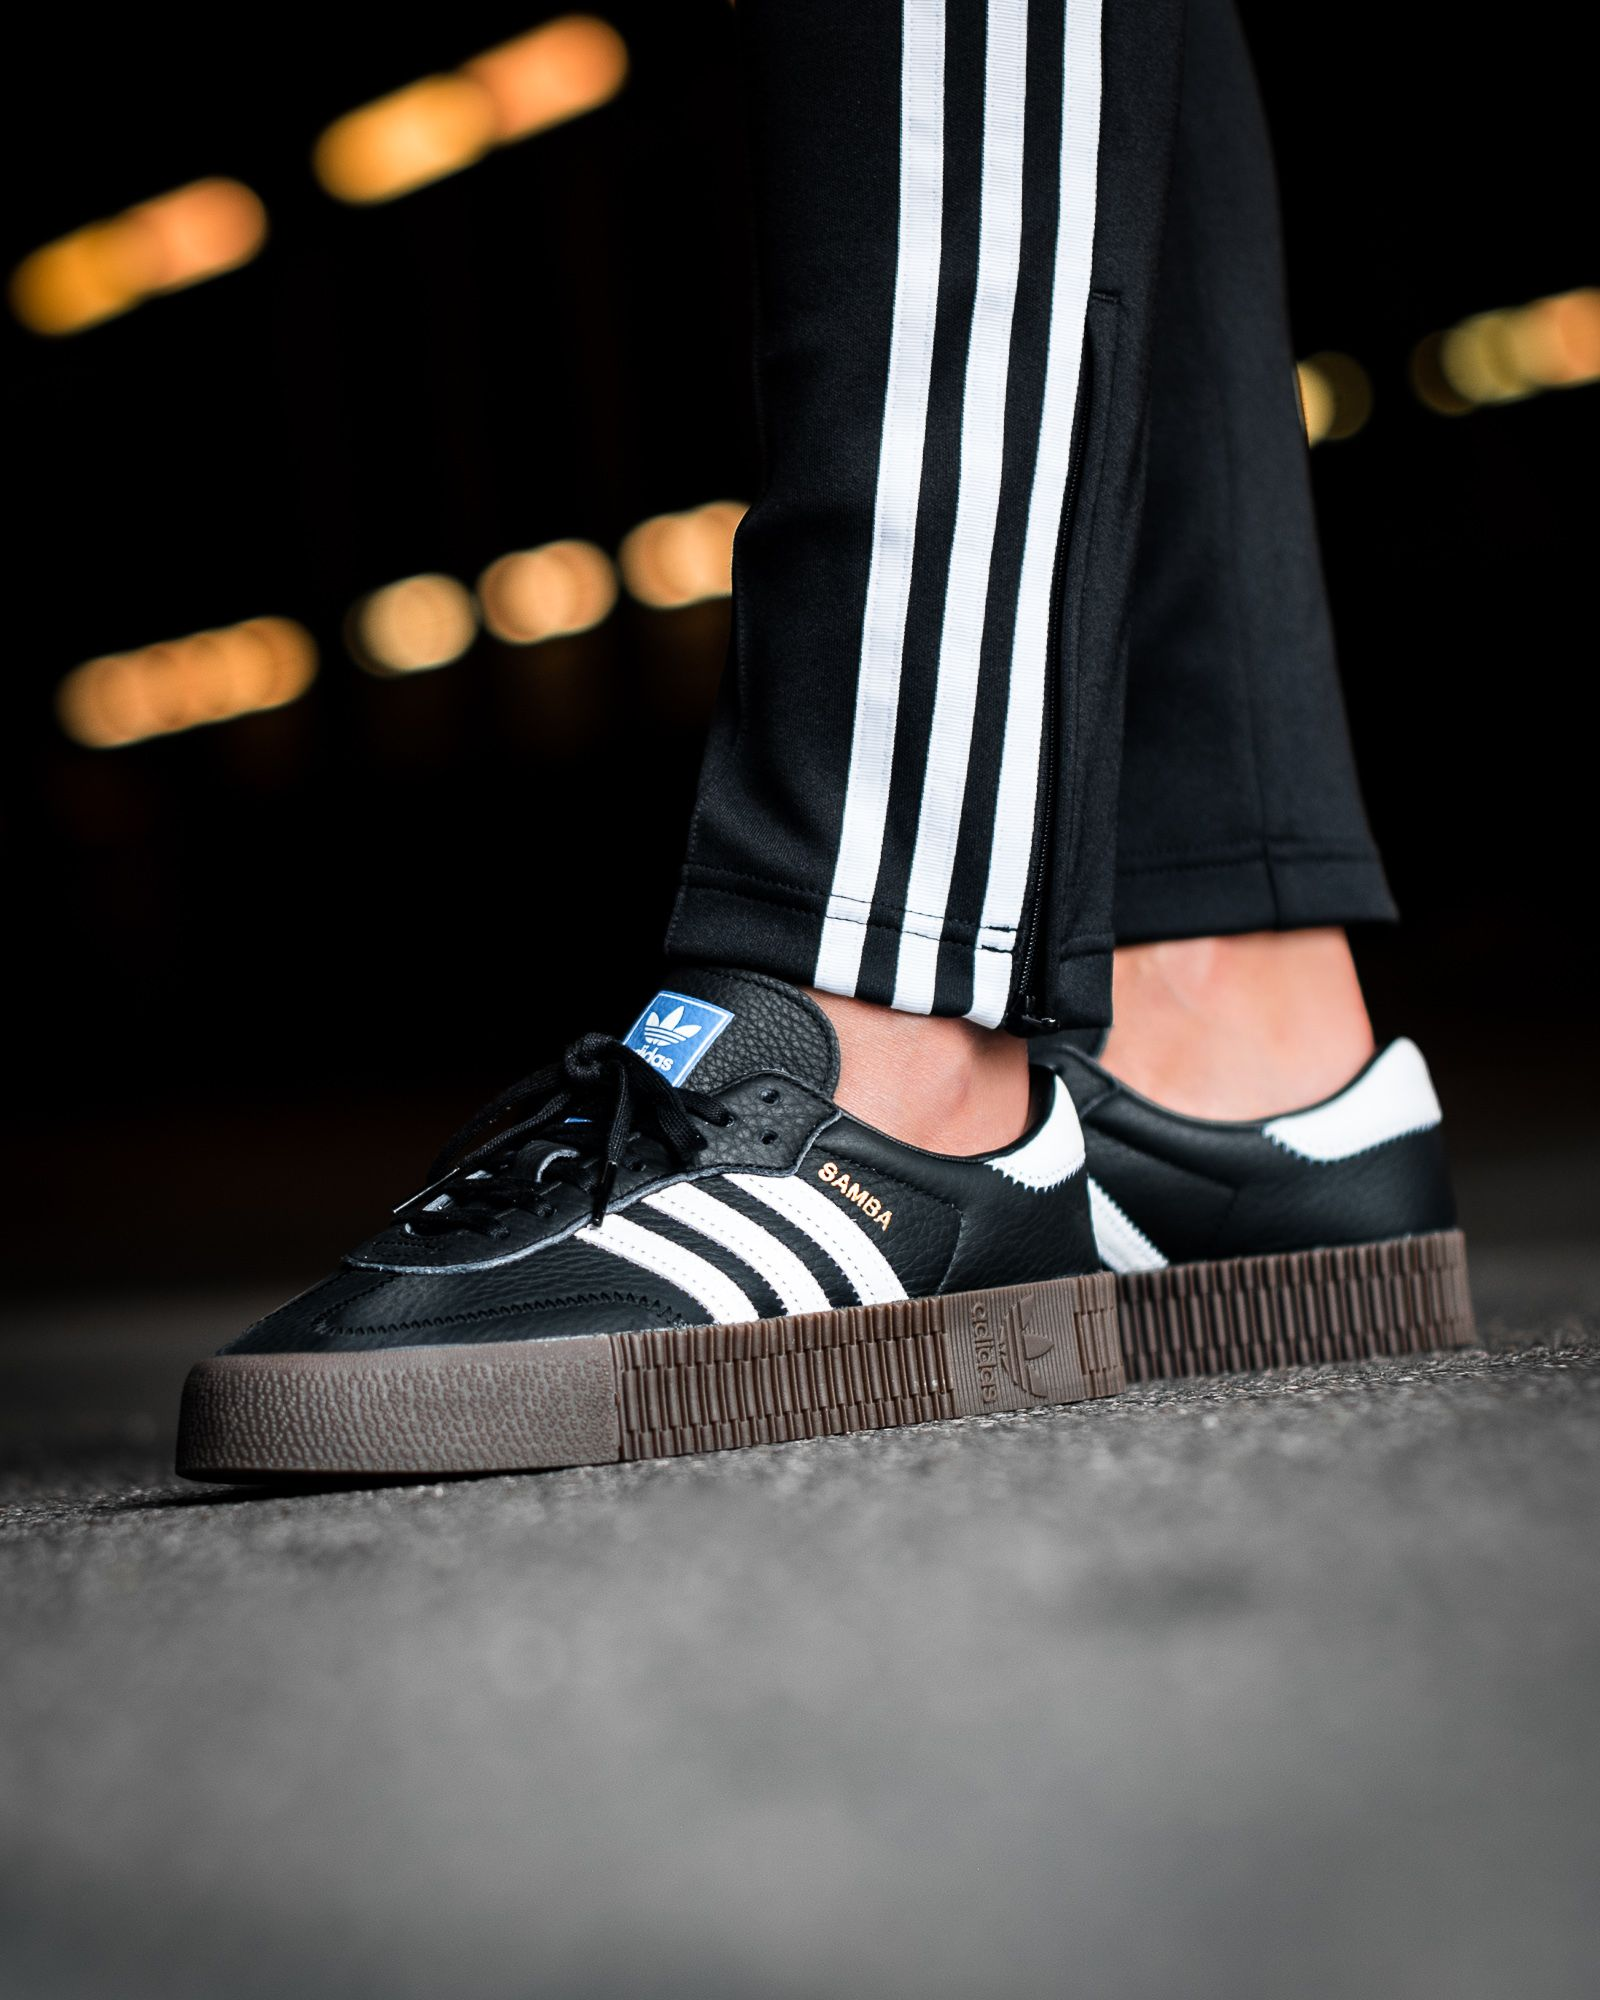 1e139754dc0 Adidas is reaching new heights with the Adidas